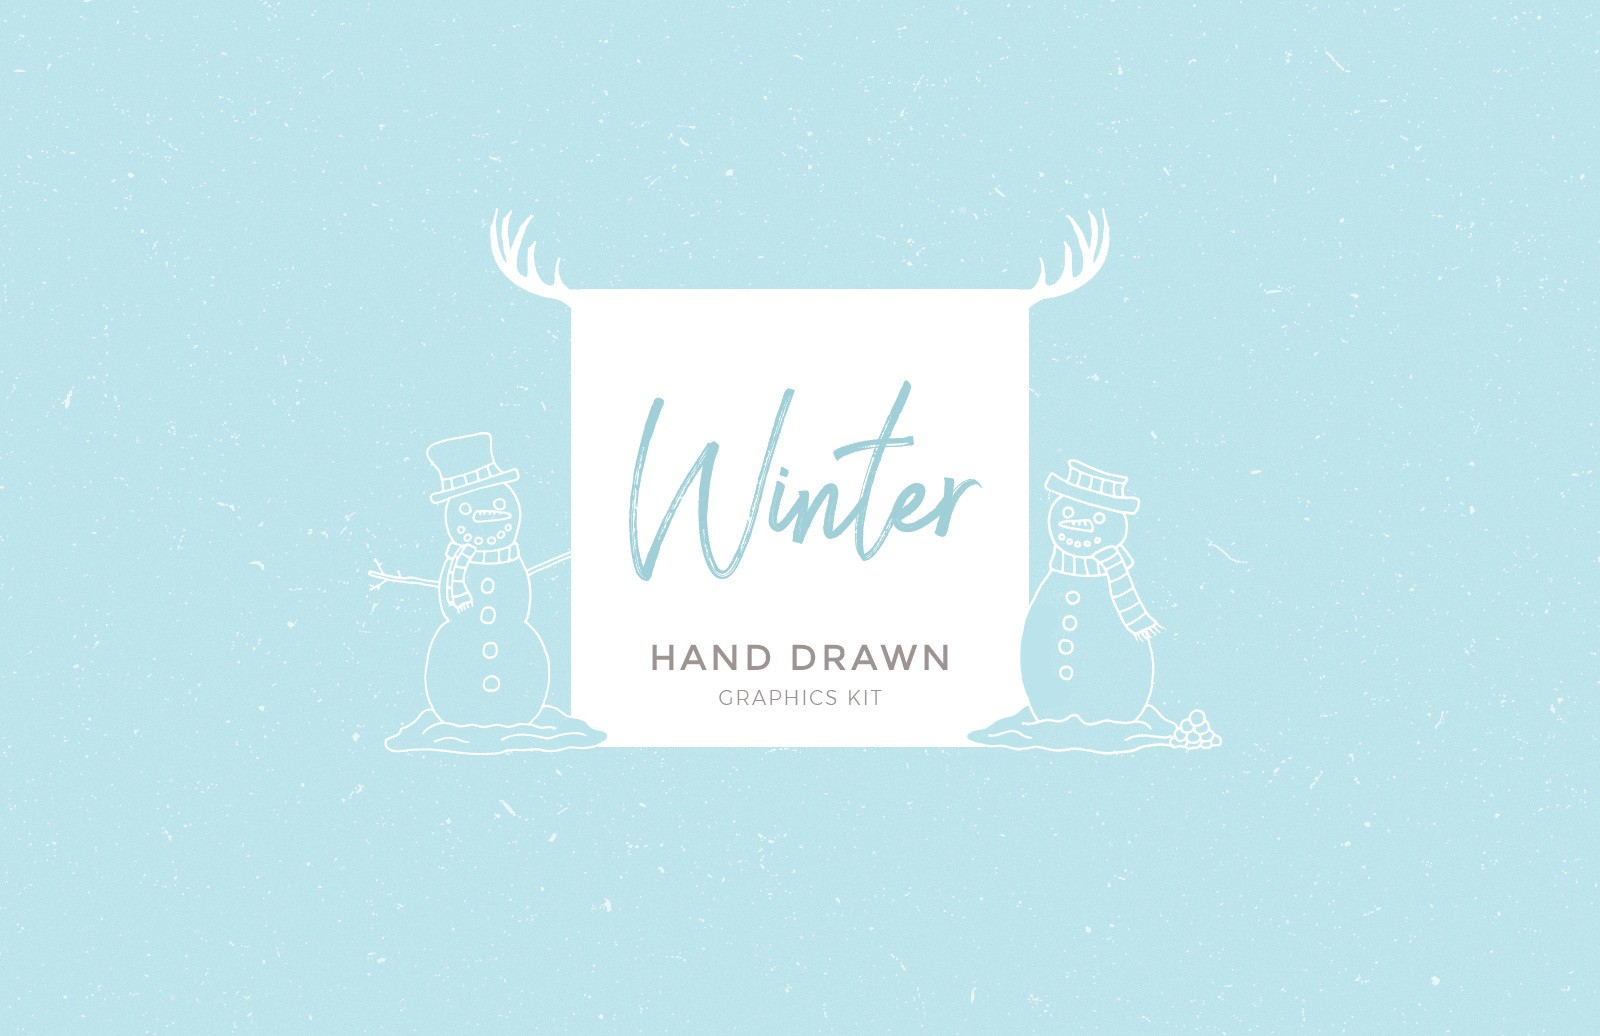 Handdrawn Winter Graphics Preview 1